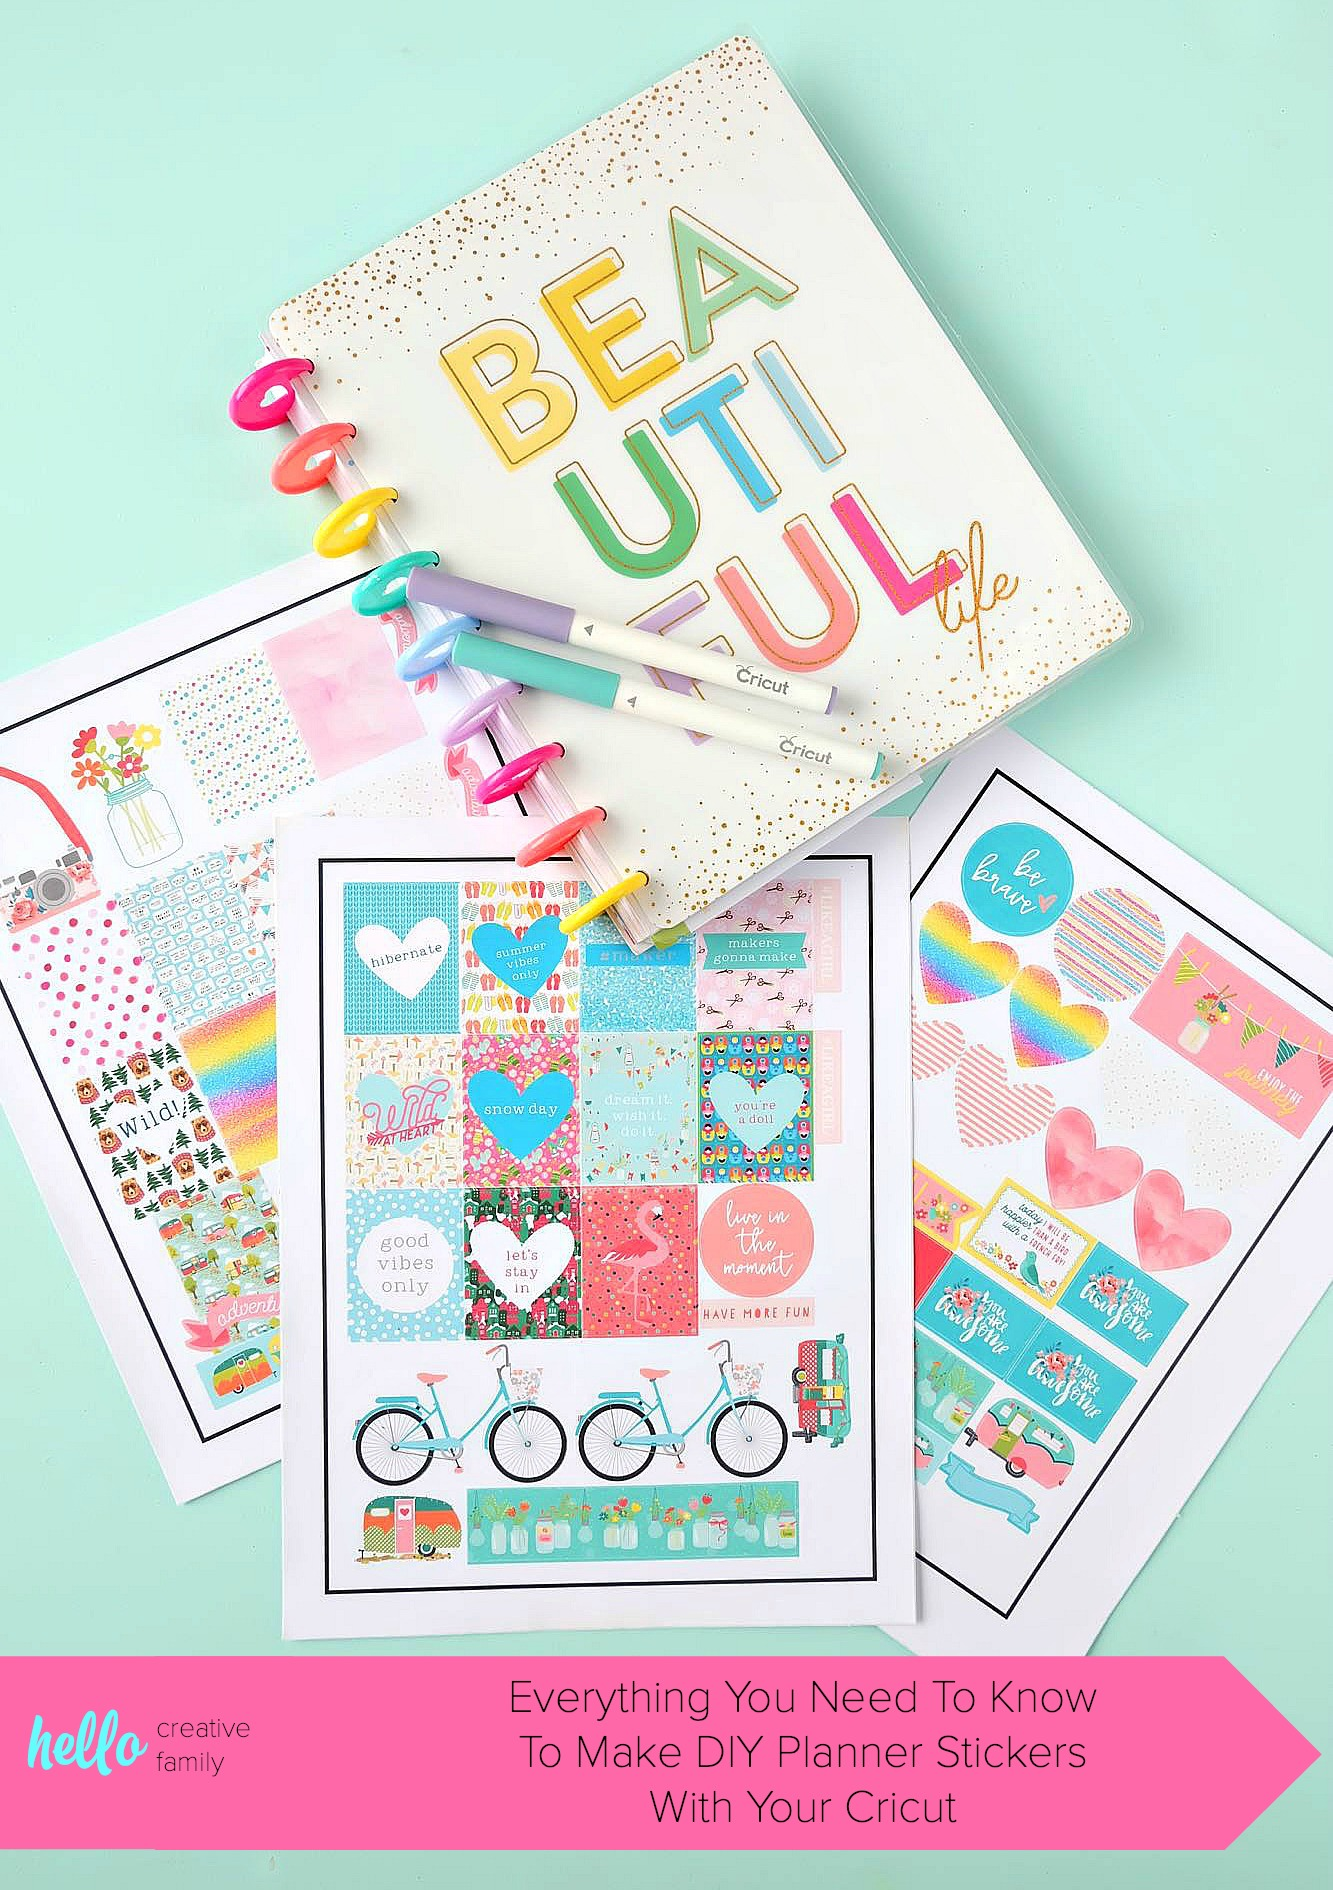 Everything you need to know how to make gorgeous custom diy planner stickers using your cricut